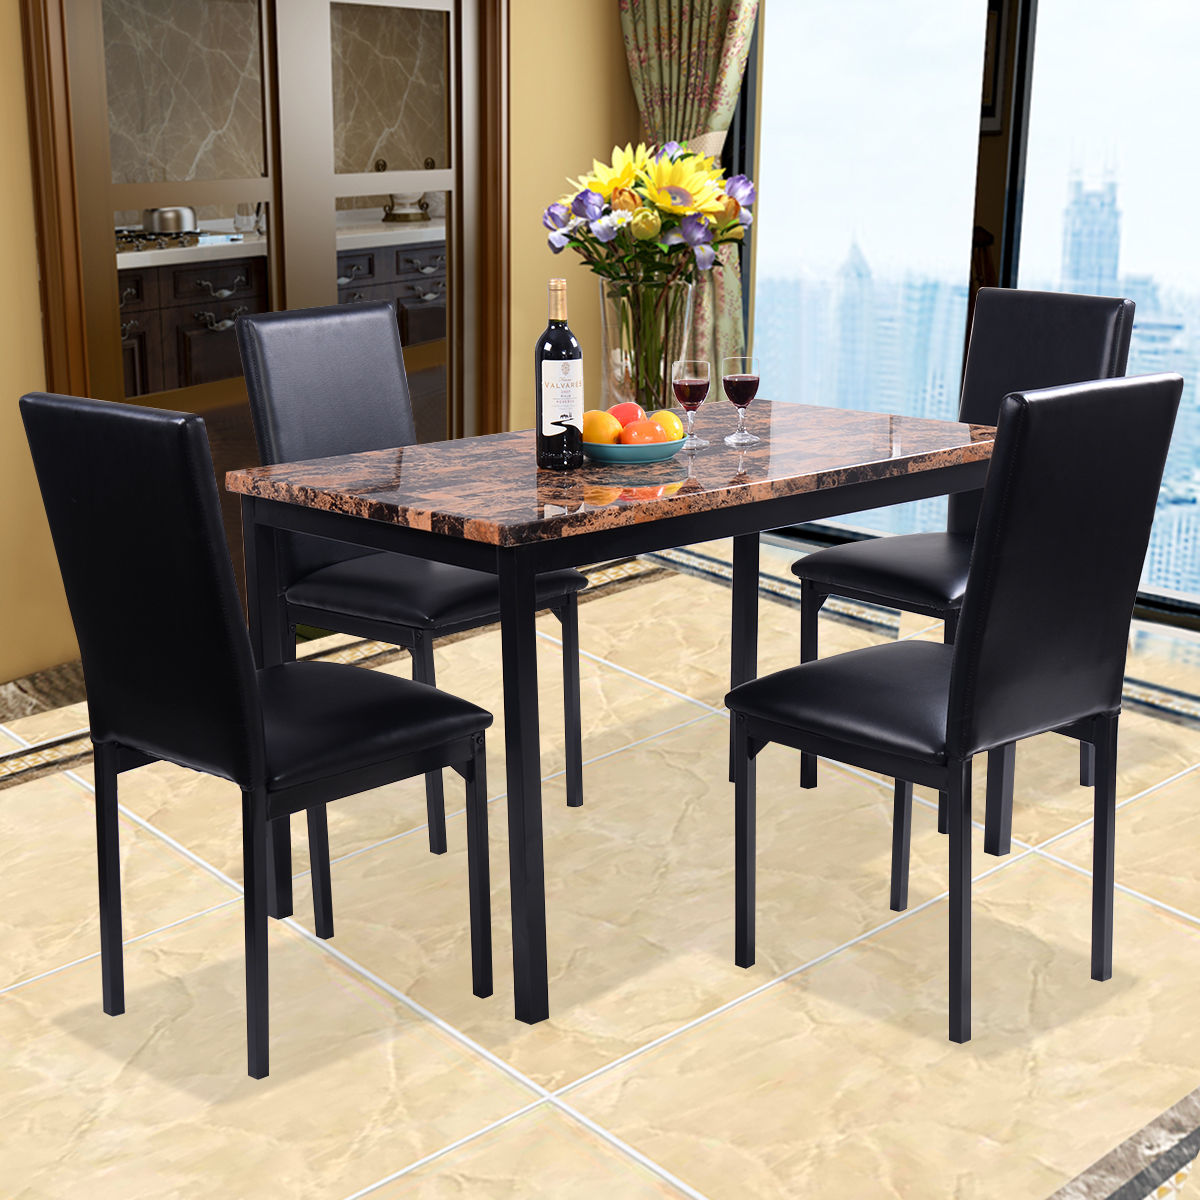 Costway 5 PC Dining Set Faux Marble Table And 4 Chairs Kitchen Dining Room Furniture & Costway 5 PC Dining Set Faux Marble Table And 4 Chairs Kitchen ...